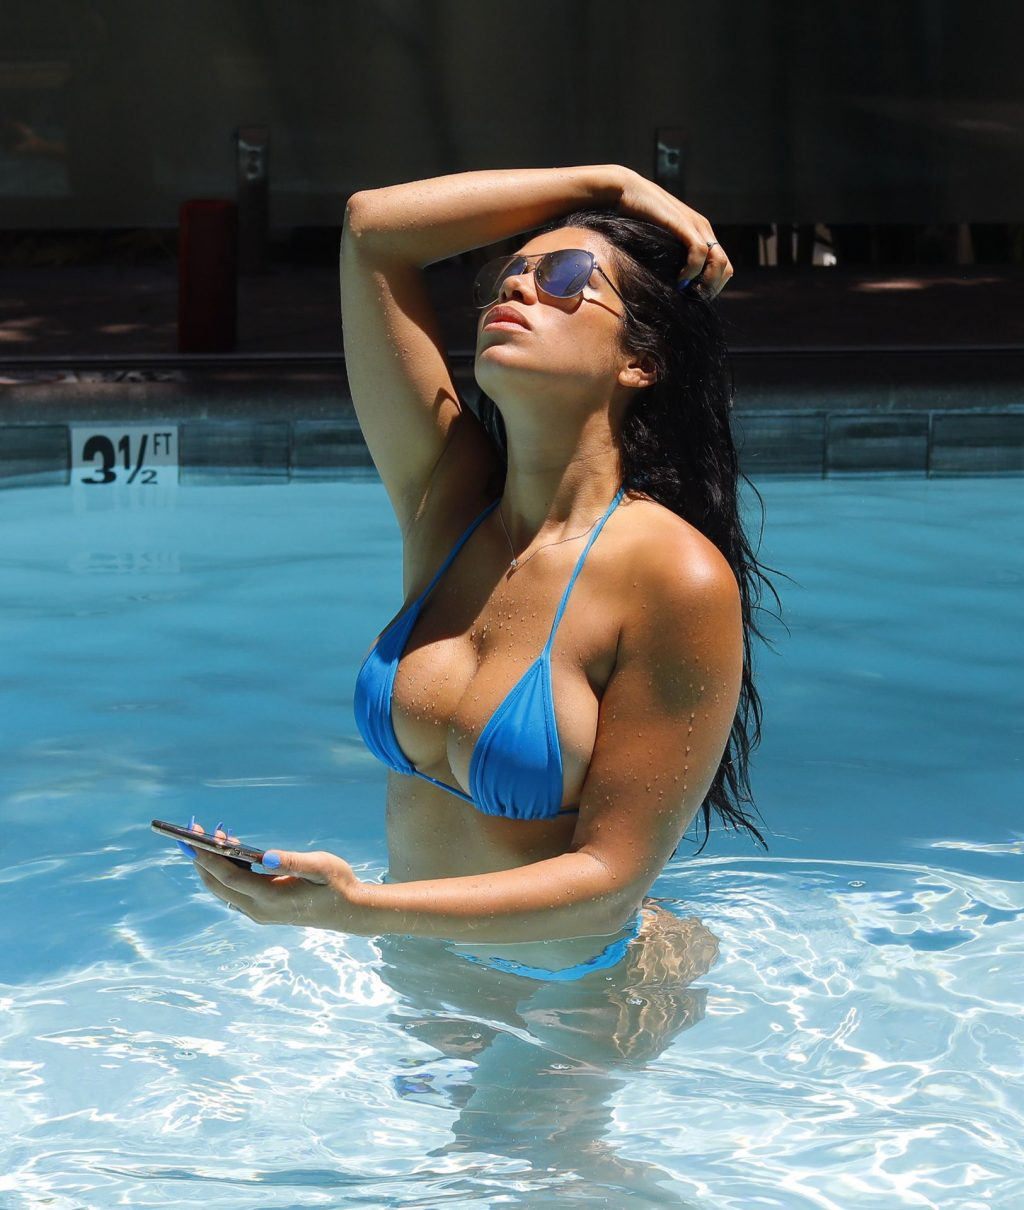 Suelyn Medeiros Shows Off Her Curves at a Luxury Hotel in LA (47 Photos)